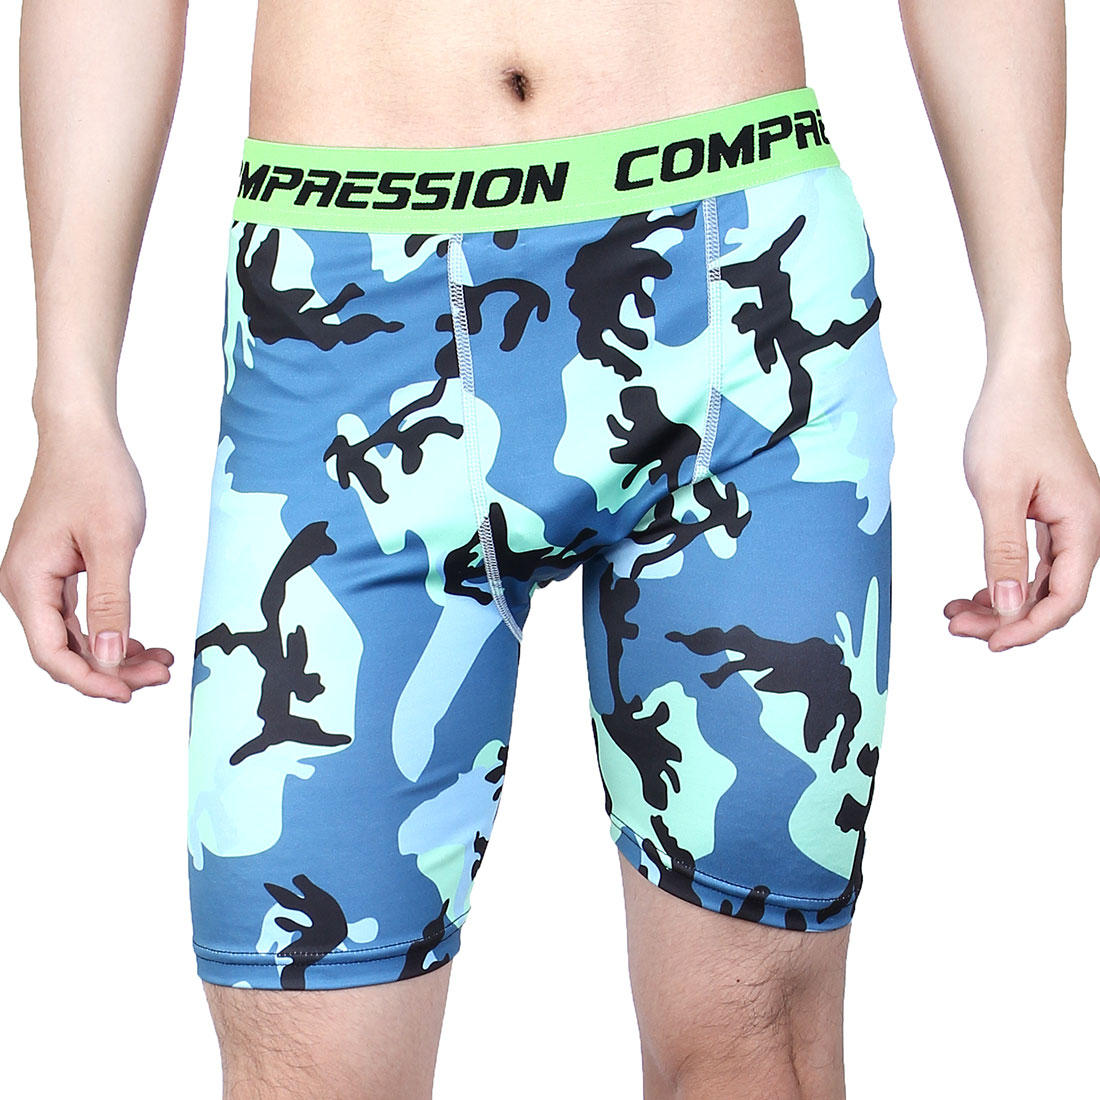 Men Polyester Fiber Compression Base Layer Short Pants Green Camouflage L US W28 by